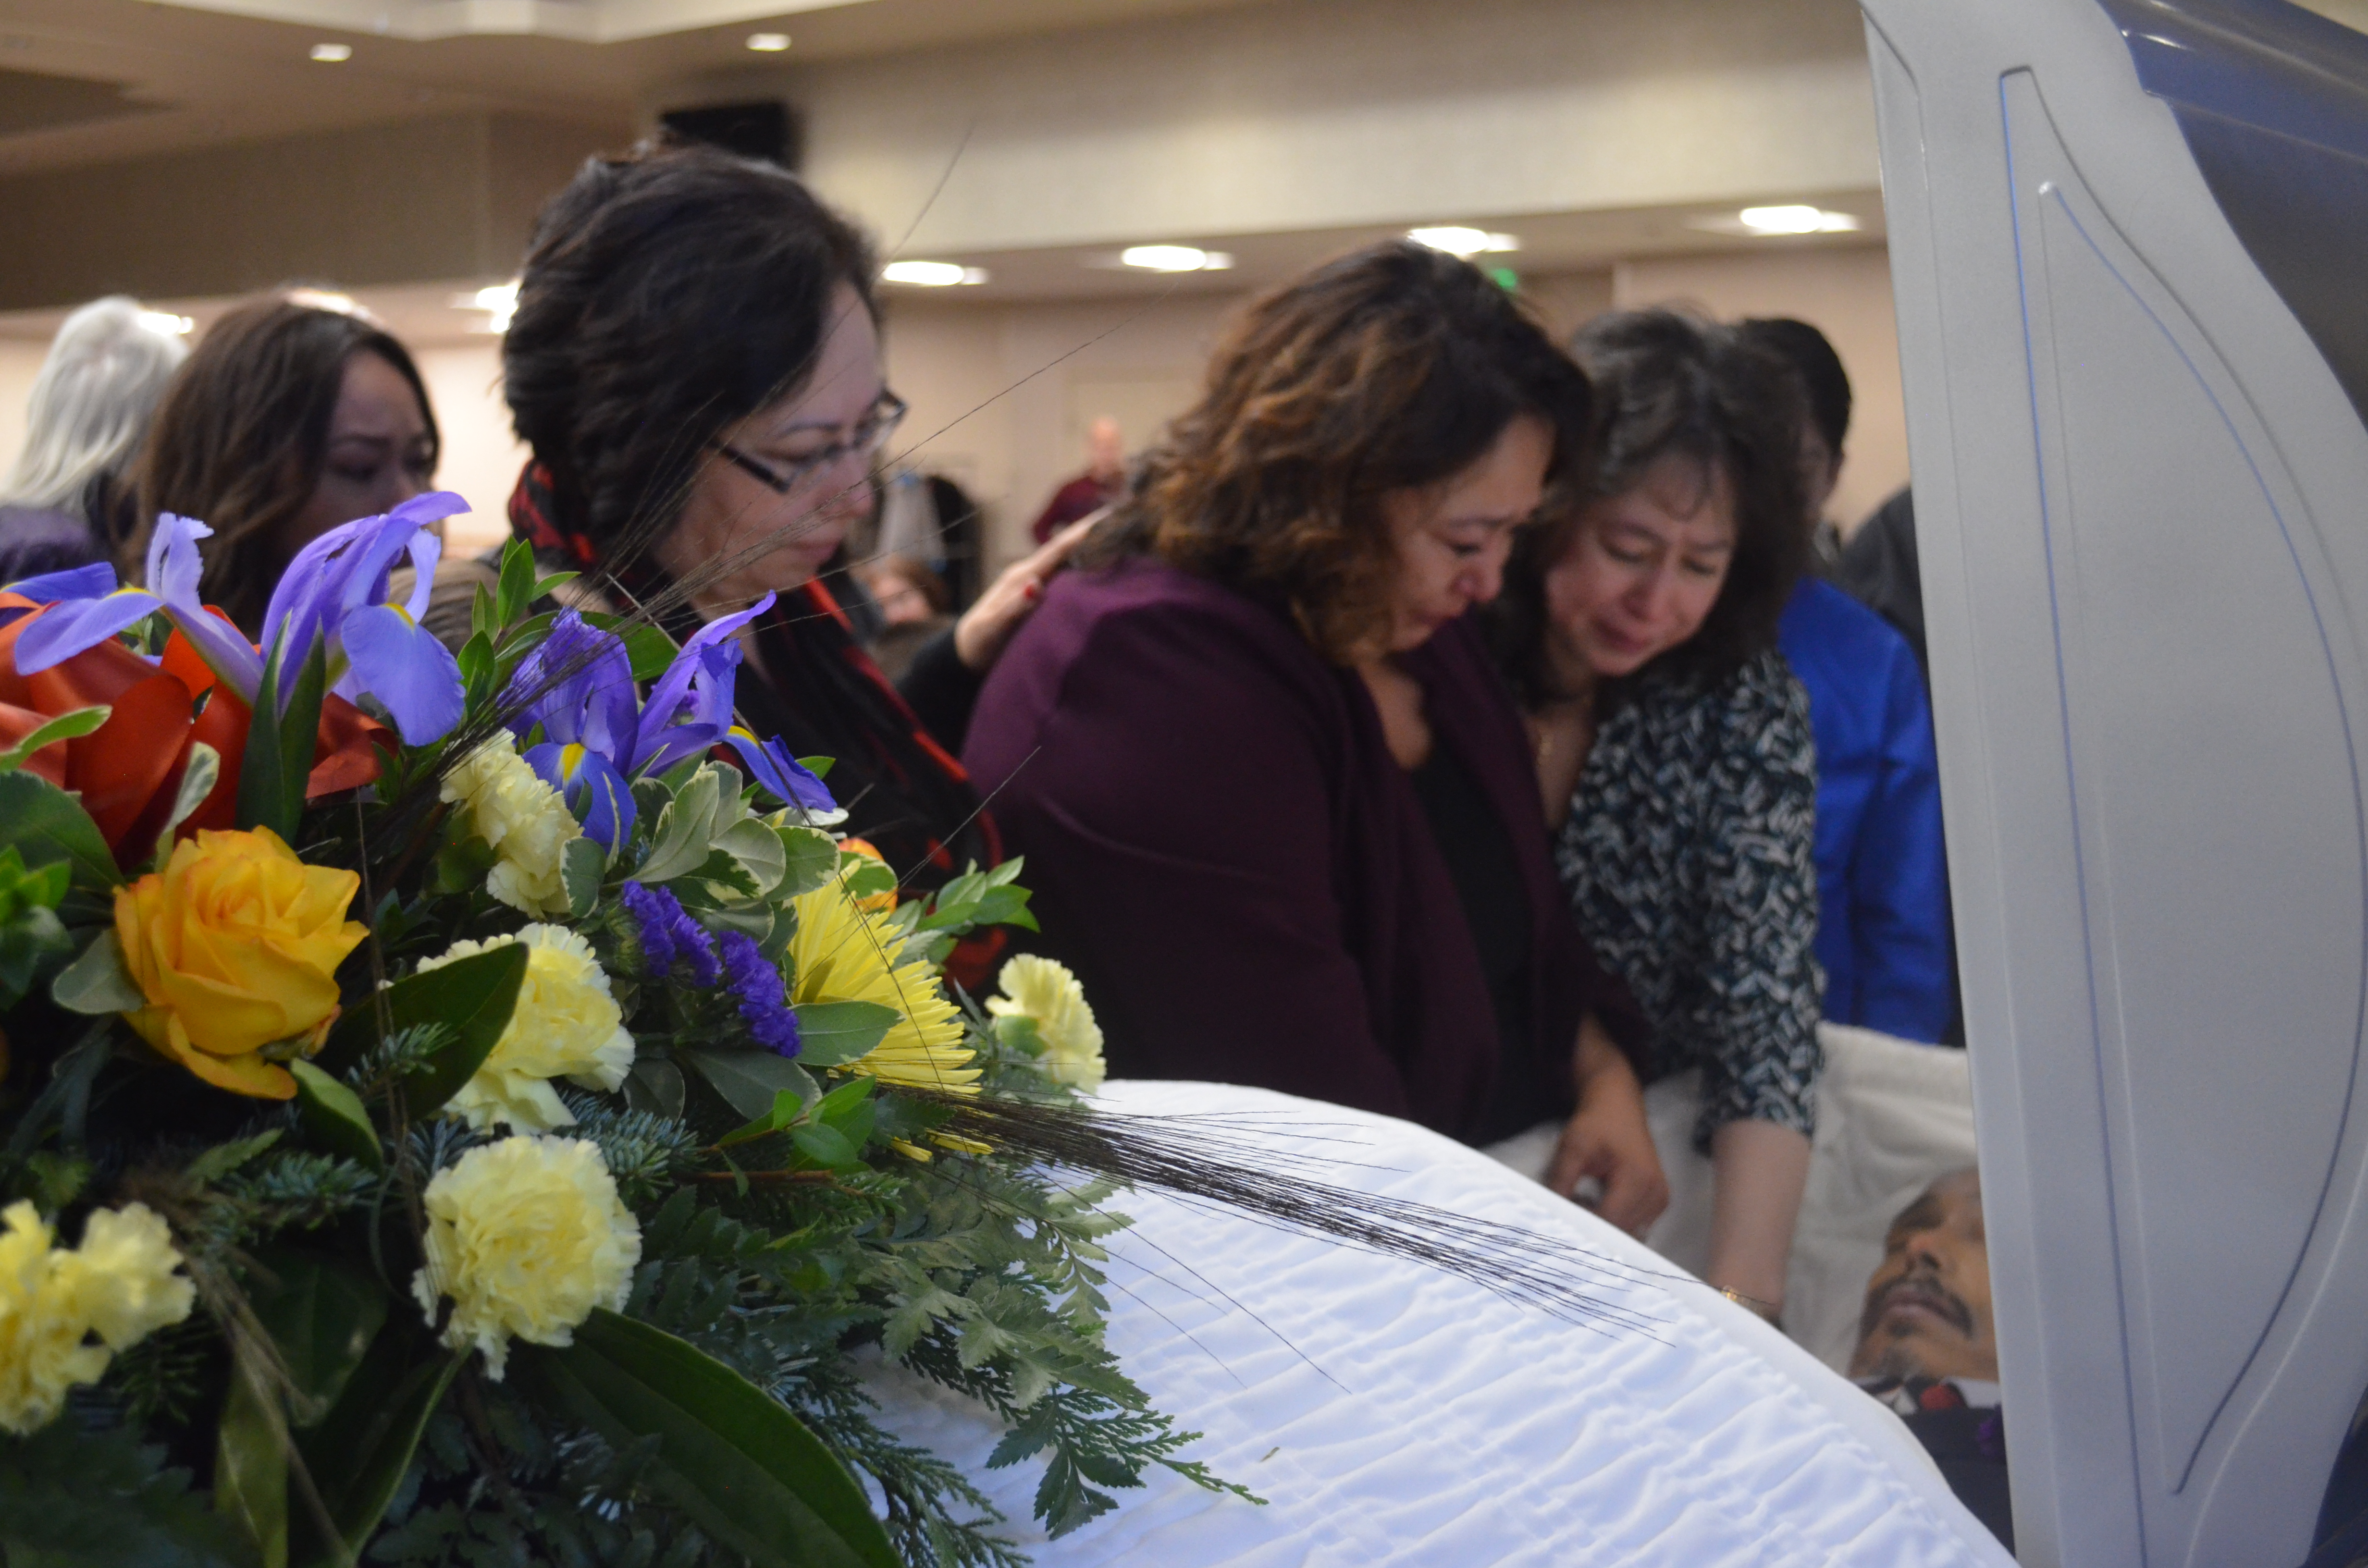 Victoria Canul Dunne (left) and Janine Canul (center) mourn the loss of their brother Mark Canul at his Jan. 26 memorial. (Photo by Jennifer Canfield/KTOO)